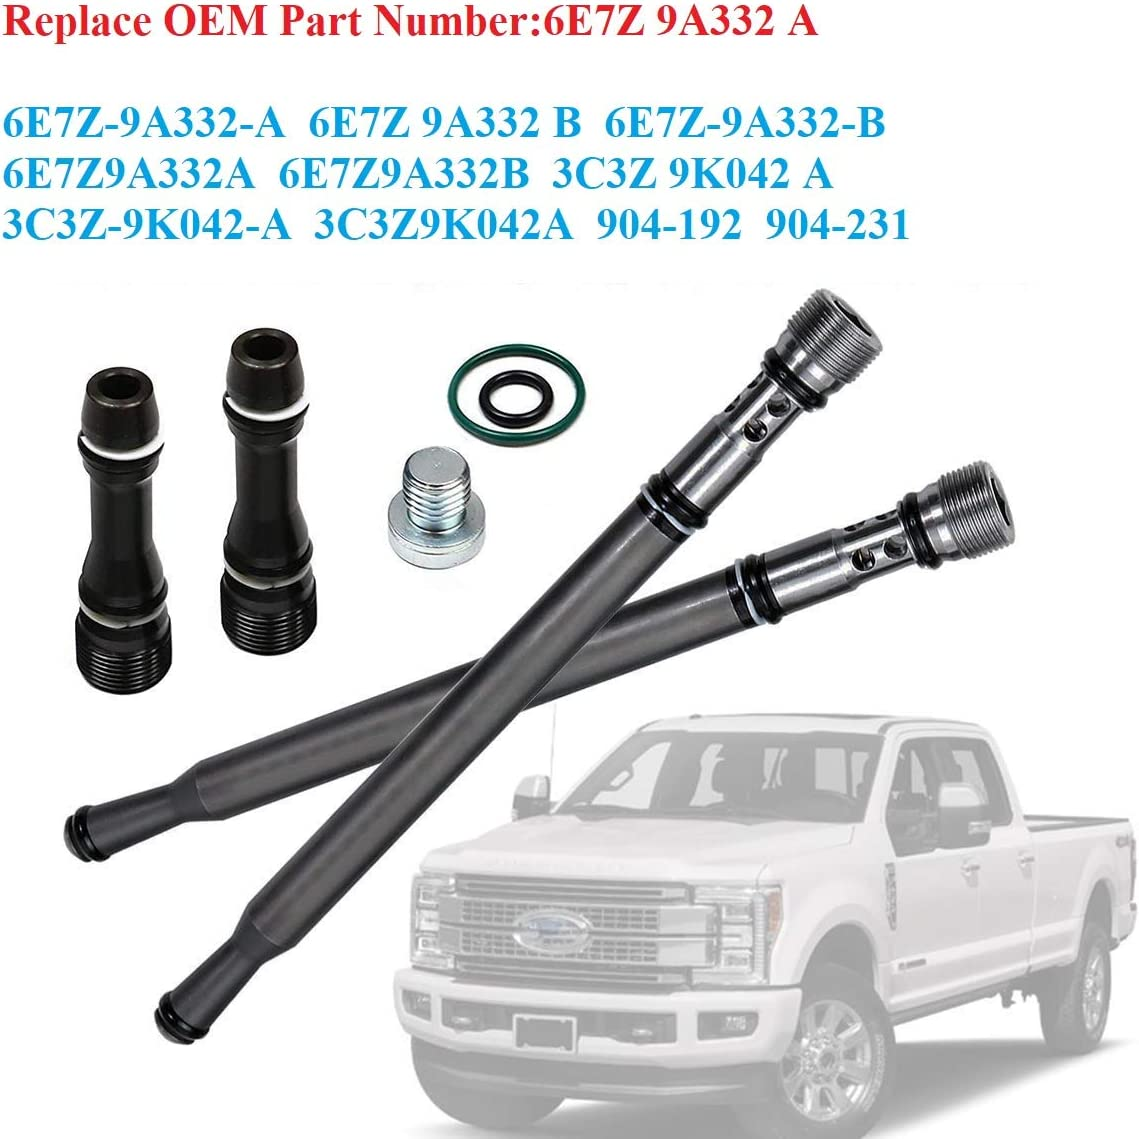 6E7Z9A332B for Genuine Ford 6E7Z-9A332-B Fuel Supply Tube,Stand Pipe /& Dummy Plug Kit Replacement for 2004-2010 Ford 6.0L Powerstroke E//F-Series Fuel Supply Tube by Lucky Seven